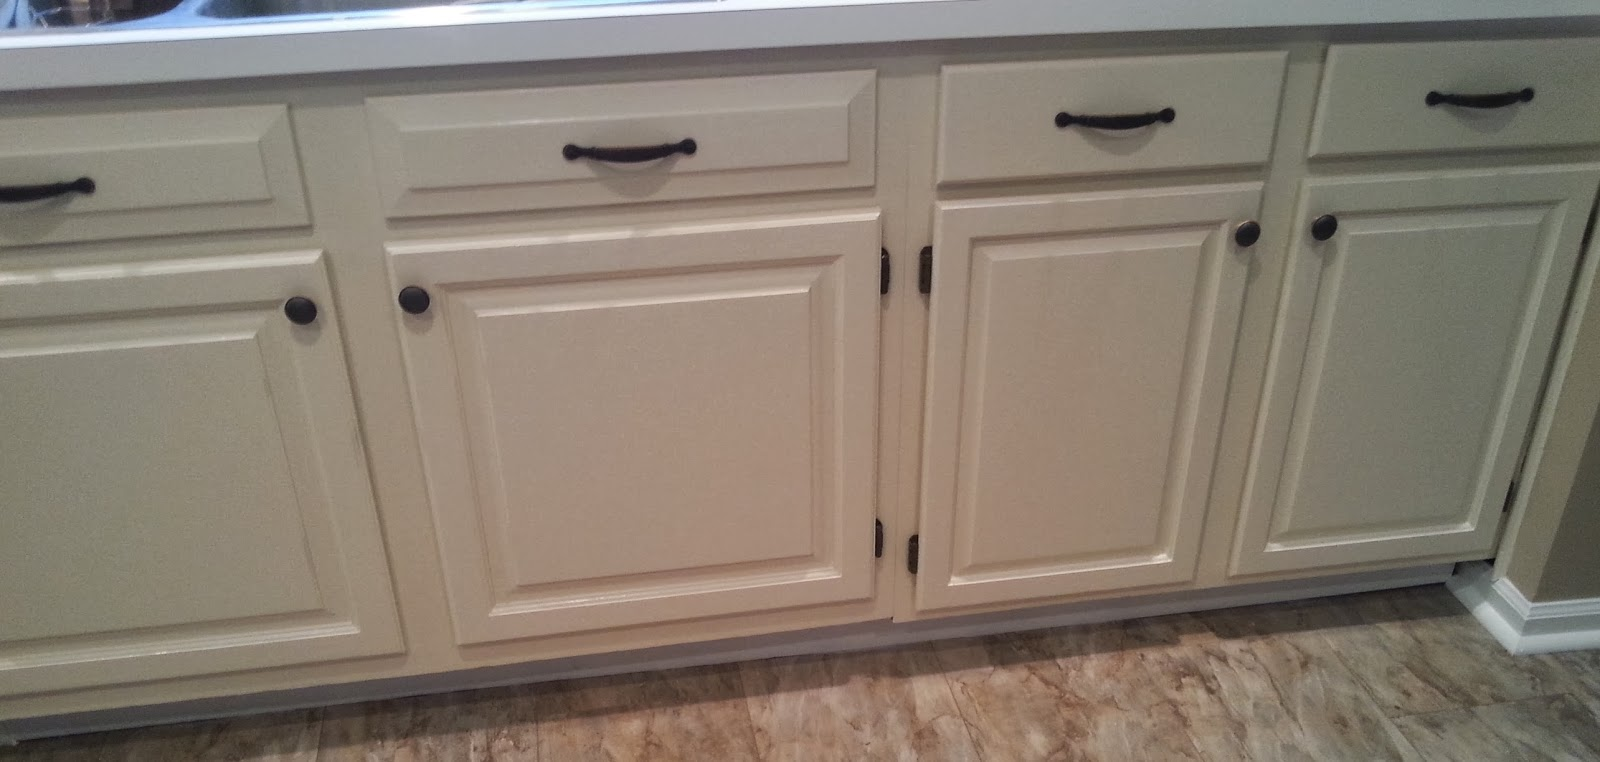 Kitchen cabinets teaneck nj - The Walls Were Painted With Benjamin Moore Regal Select Matte Finish The Color Is Bradstreet Beige Hc 48 The Doors And Trim Were Finished With Rs